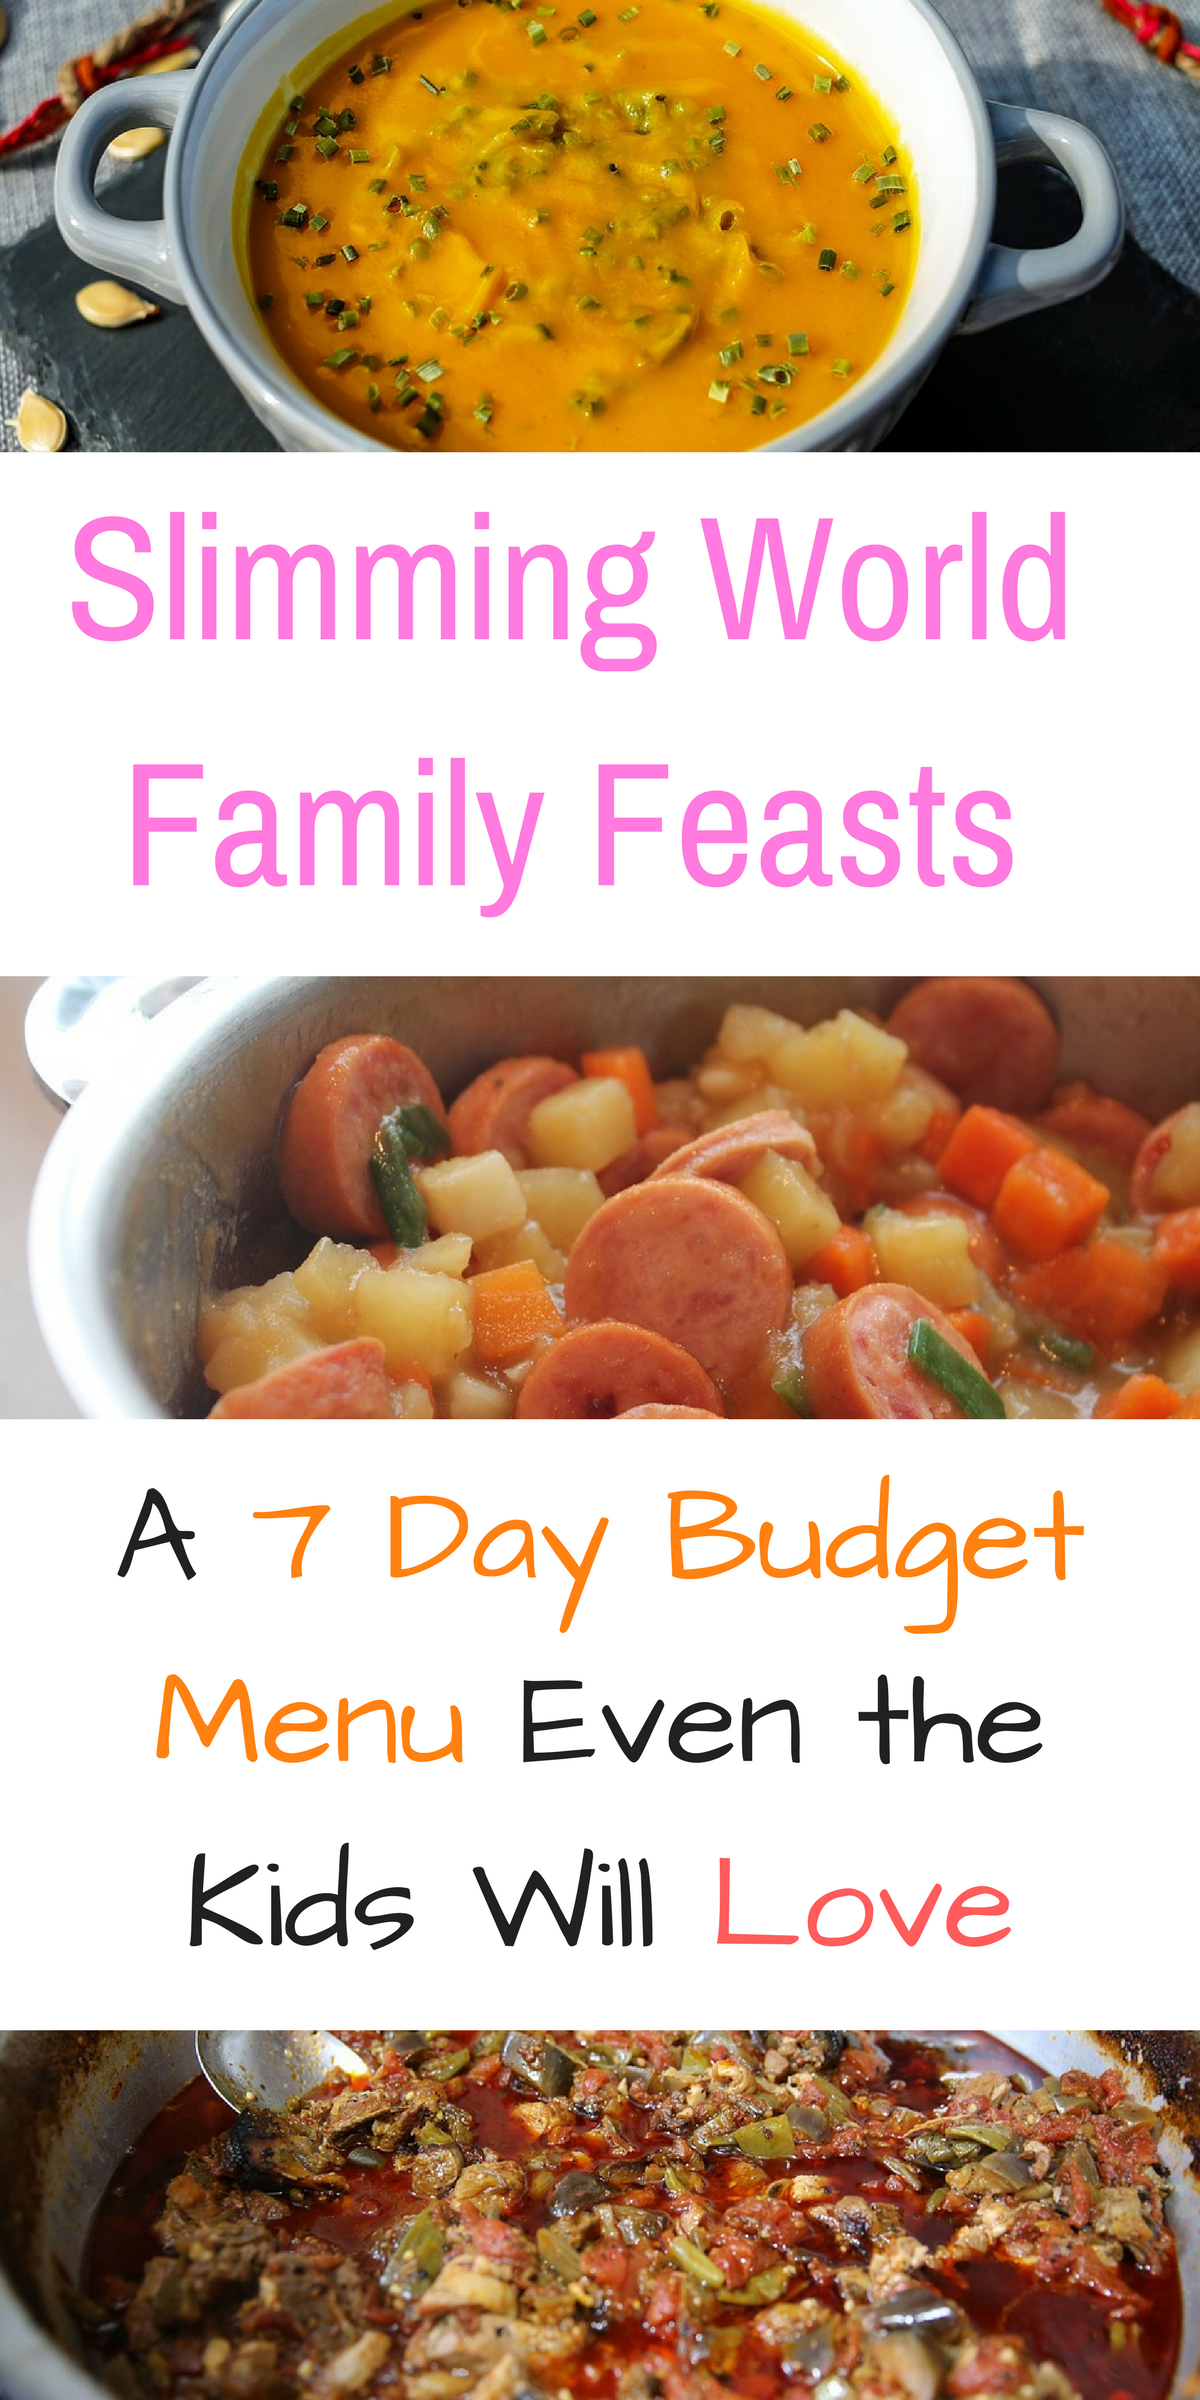 Slimming World Meal Plan: 7 Days of Cheap Slimming World Meals